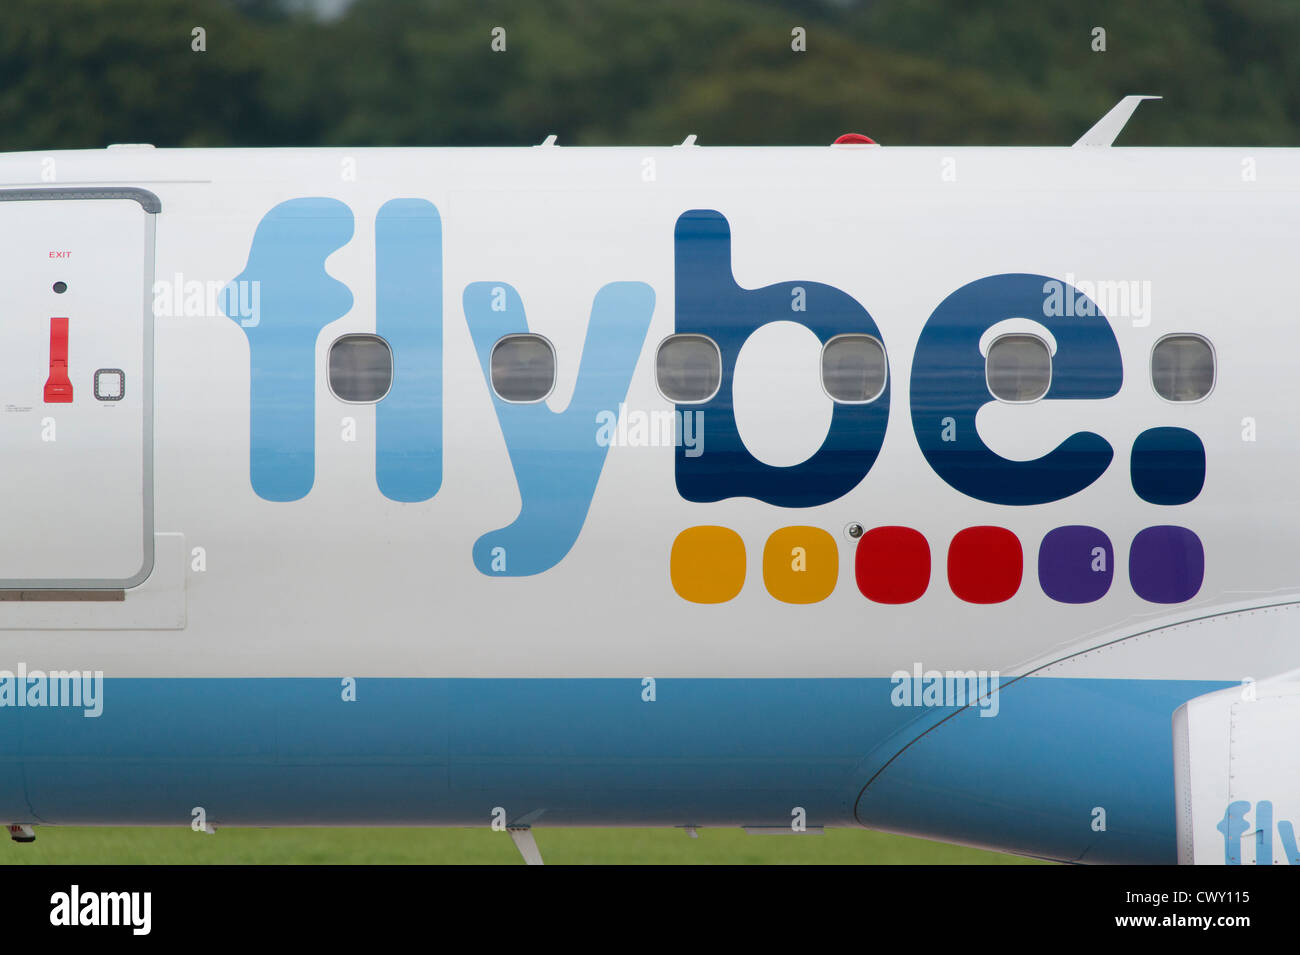 A close up of the Flybe logo on the fuselage of a passenger aircraft (Editorial use only) - Stock Image